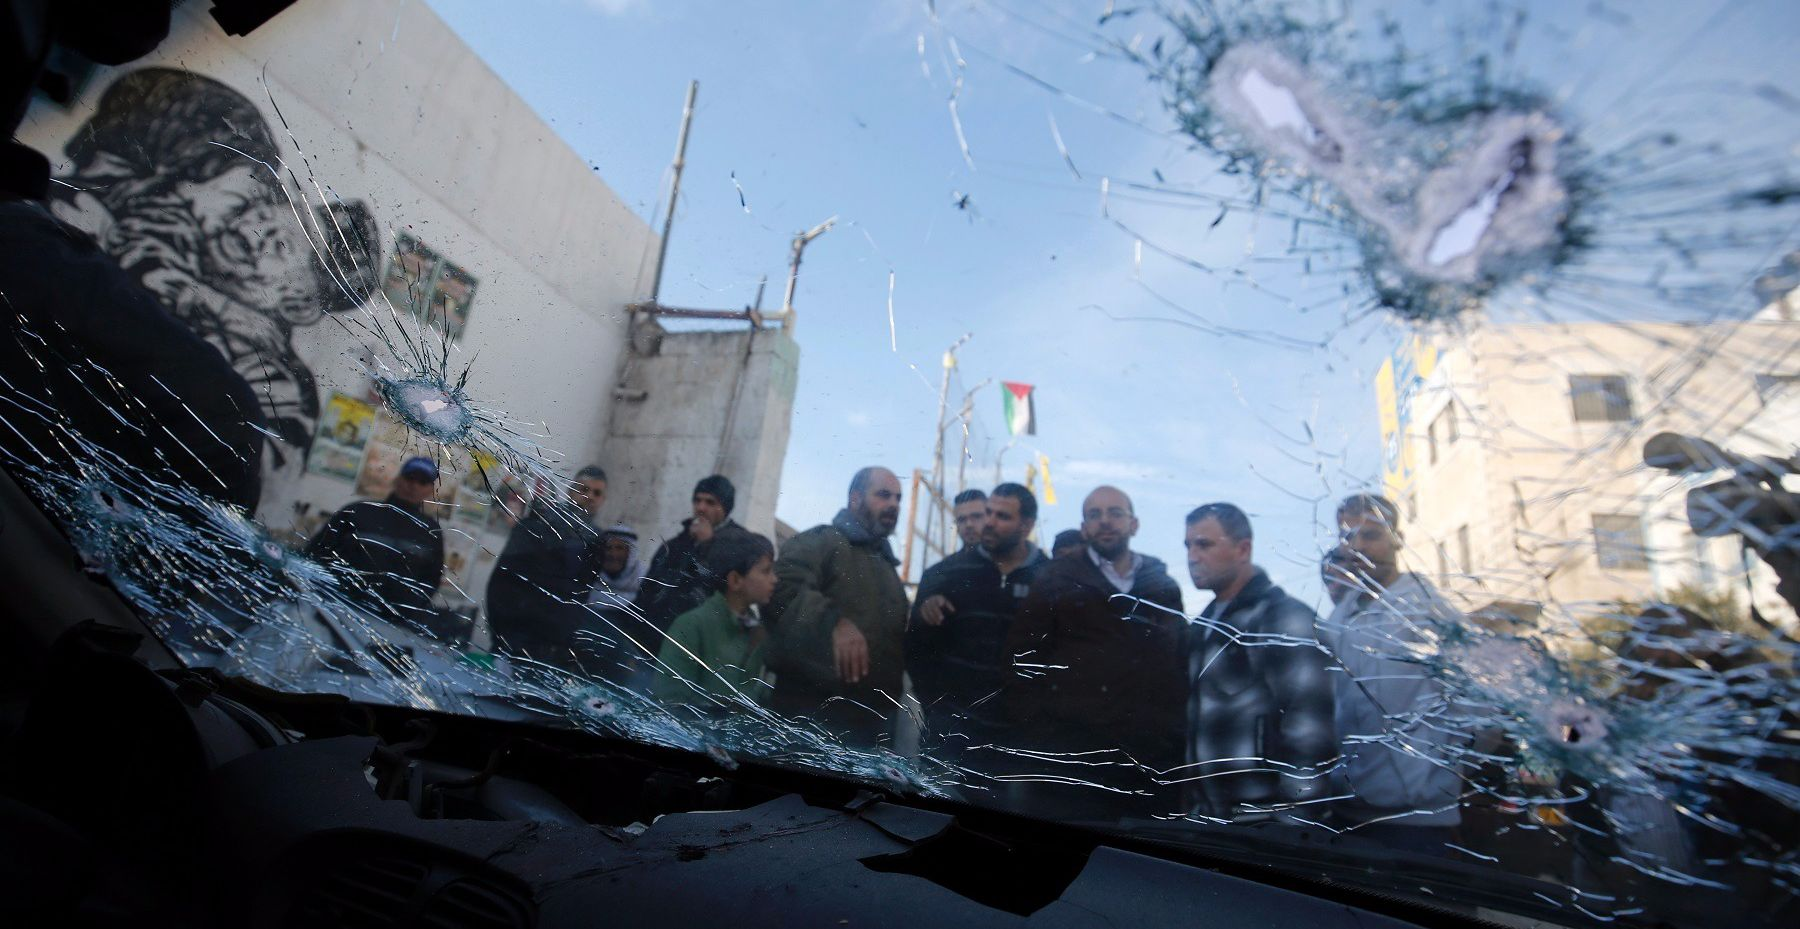 Israeli security forces shot dead two Palestinians who tried to ram them with their cars during an arrest raid in the West Bank Wednesday, the Israeli army and police and Palestinian medical sources said.